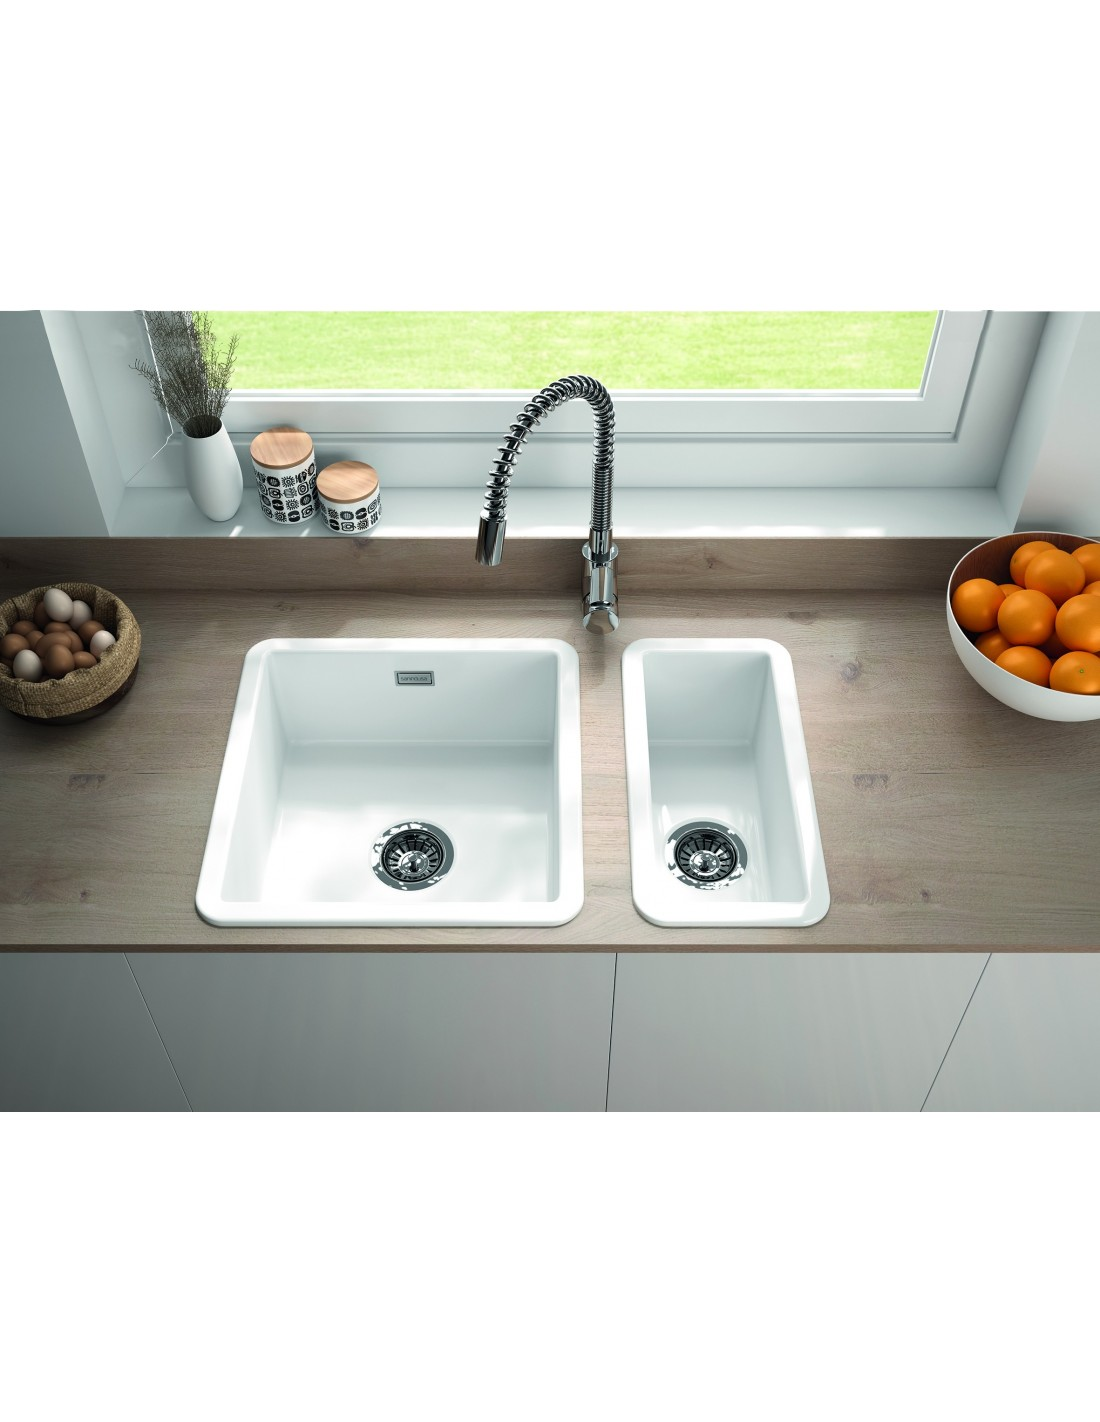 Metro By Thoms Denby MET1040 1.0 Bowl Ceramic Sink